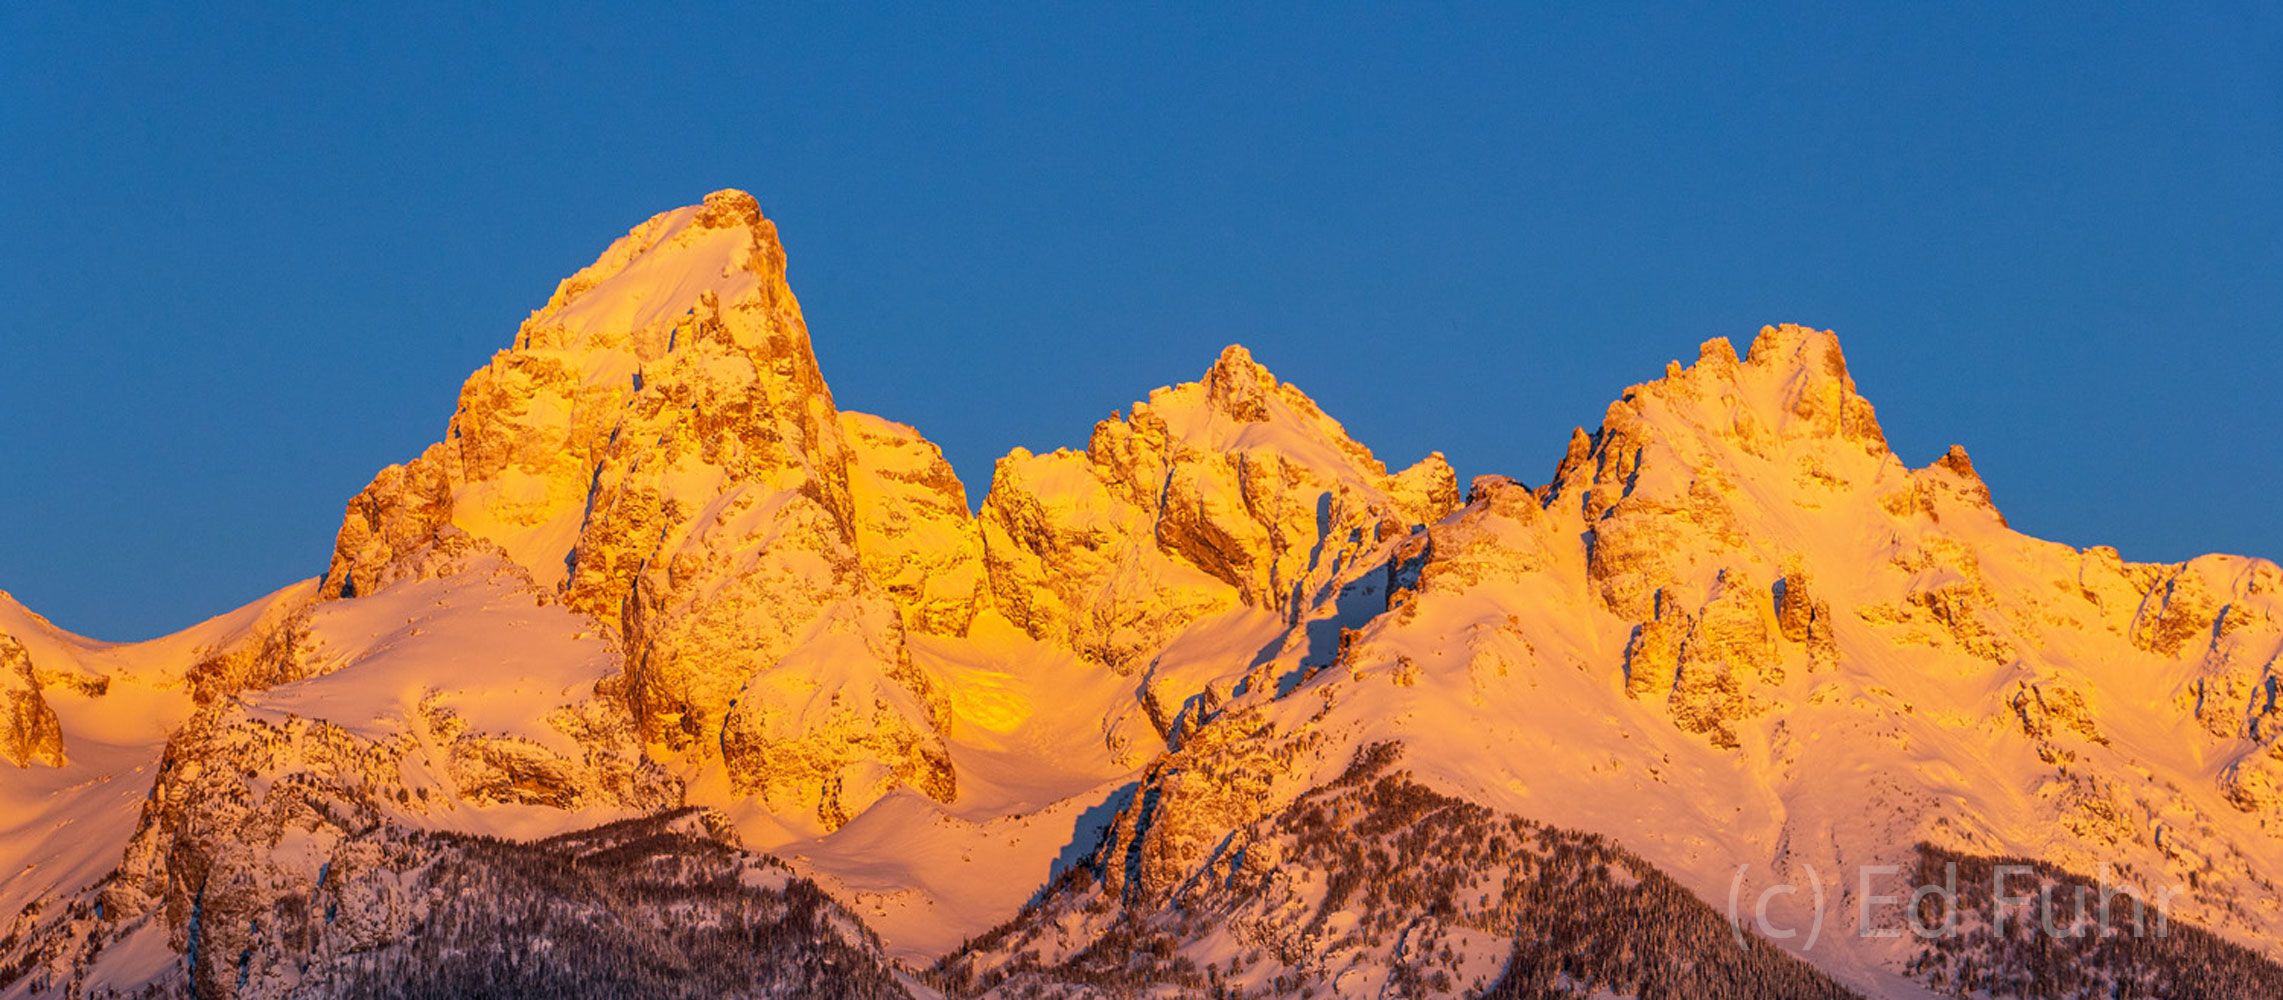 Sunrise has come and the Teton range glows in the early golden light of a new day.